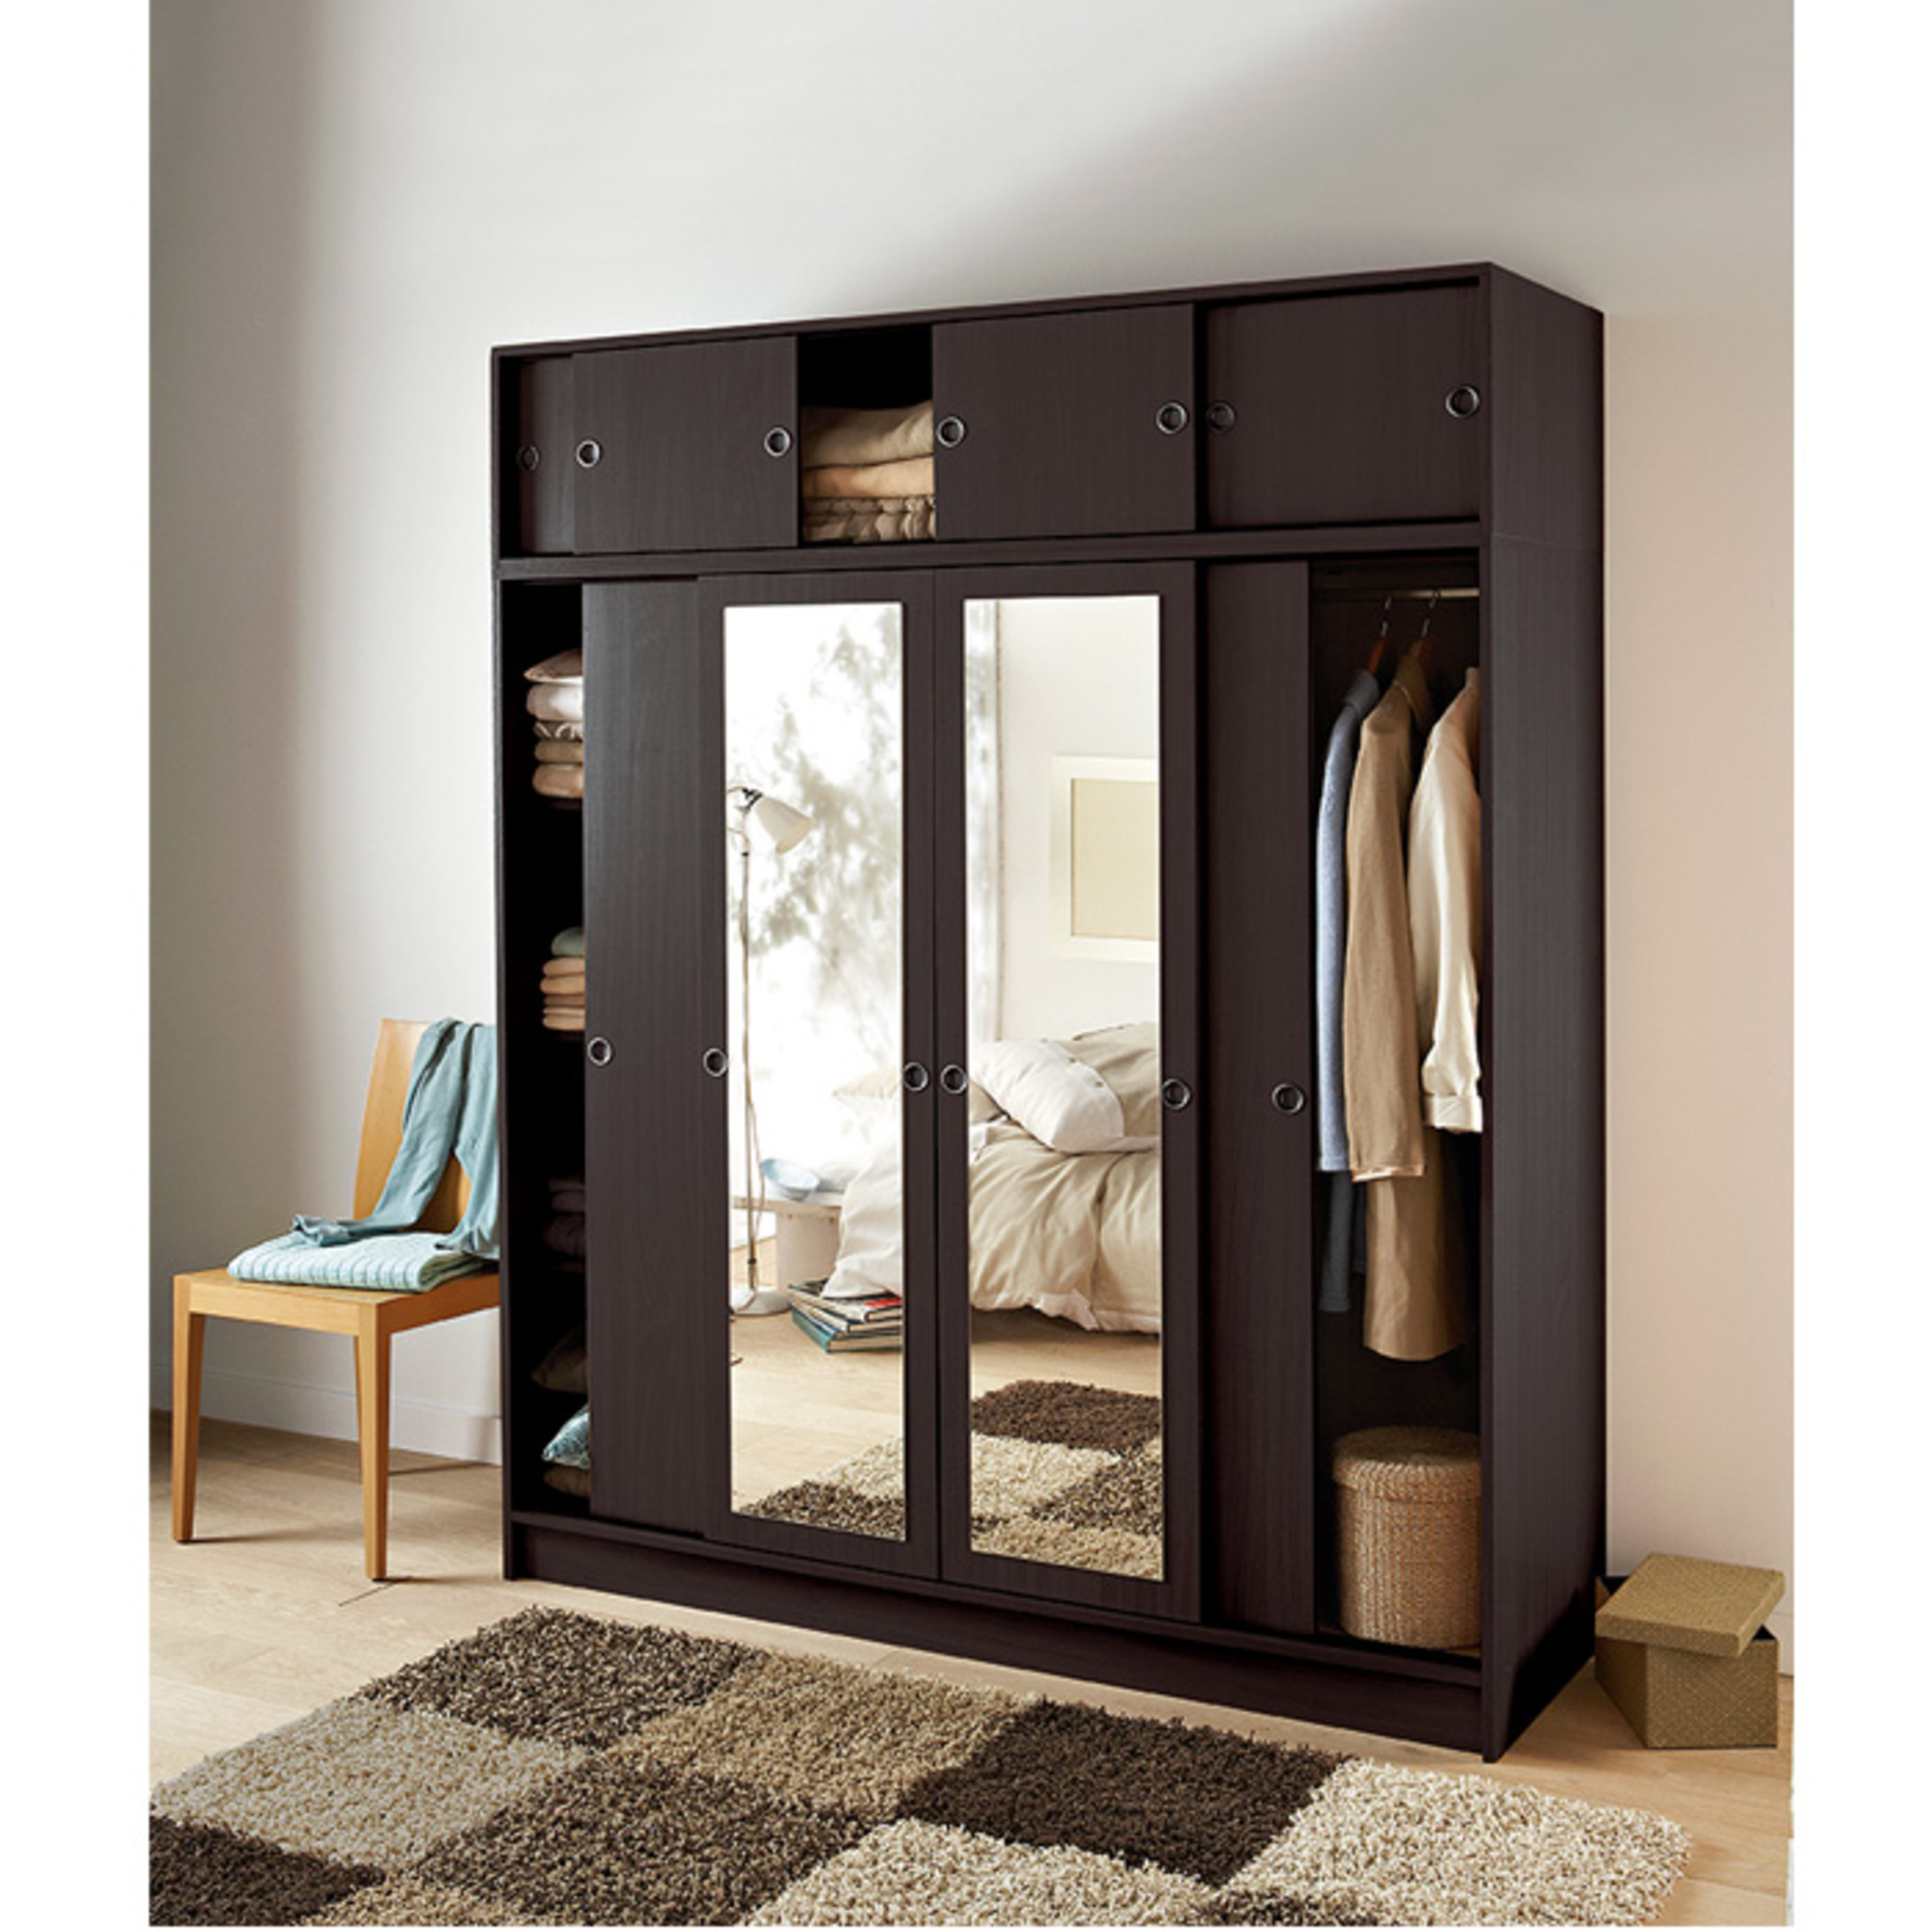 Salon scandinave vintage - Armoire 3 portes coulissantes but ...